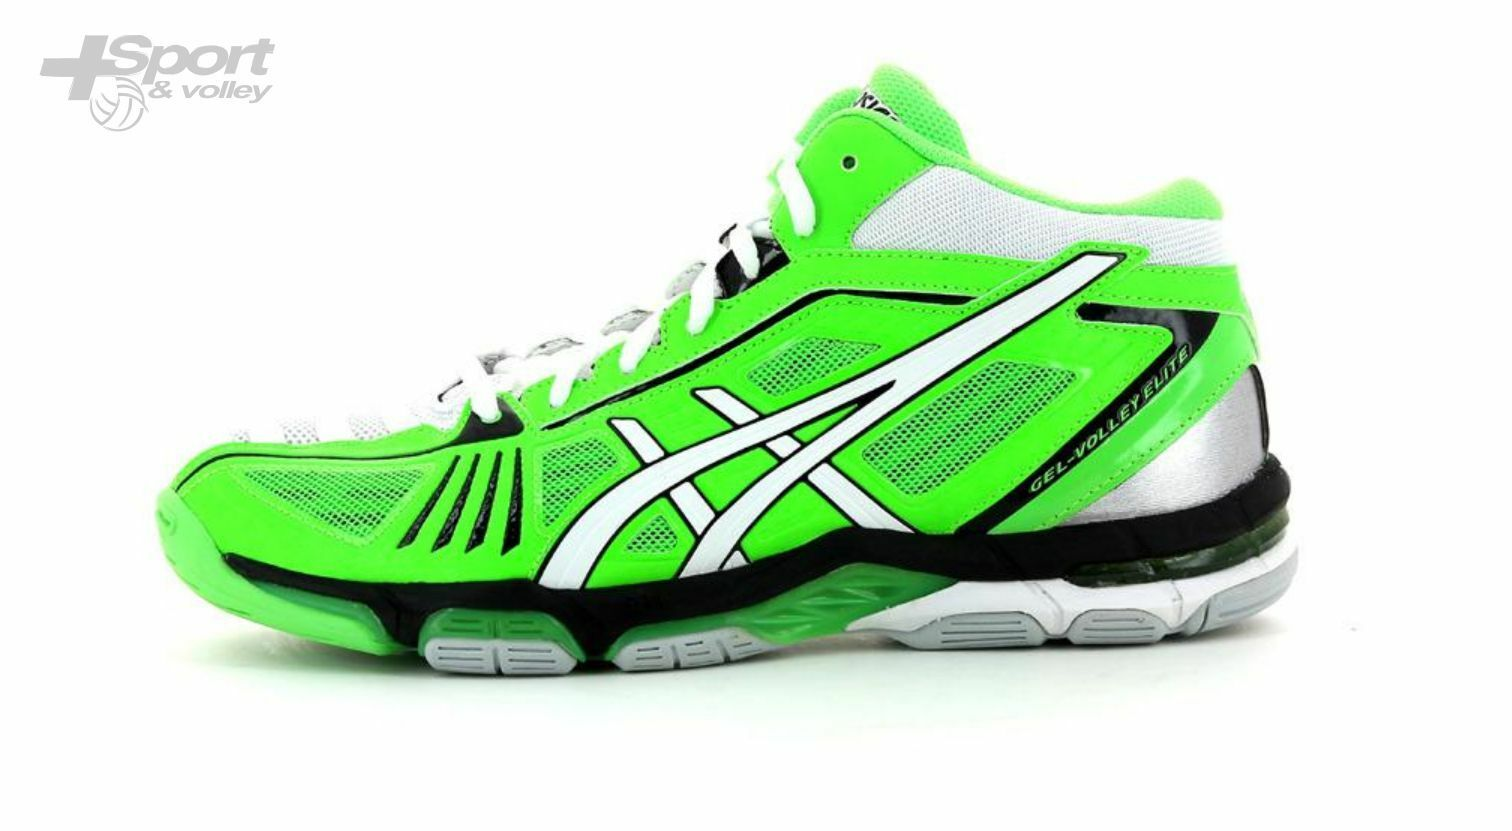 chaussure volley Asics gel volley Elite 2 Mittel- Herren B300N-7001 Ende Serie